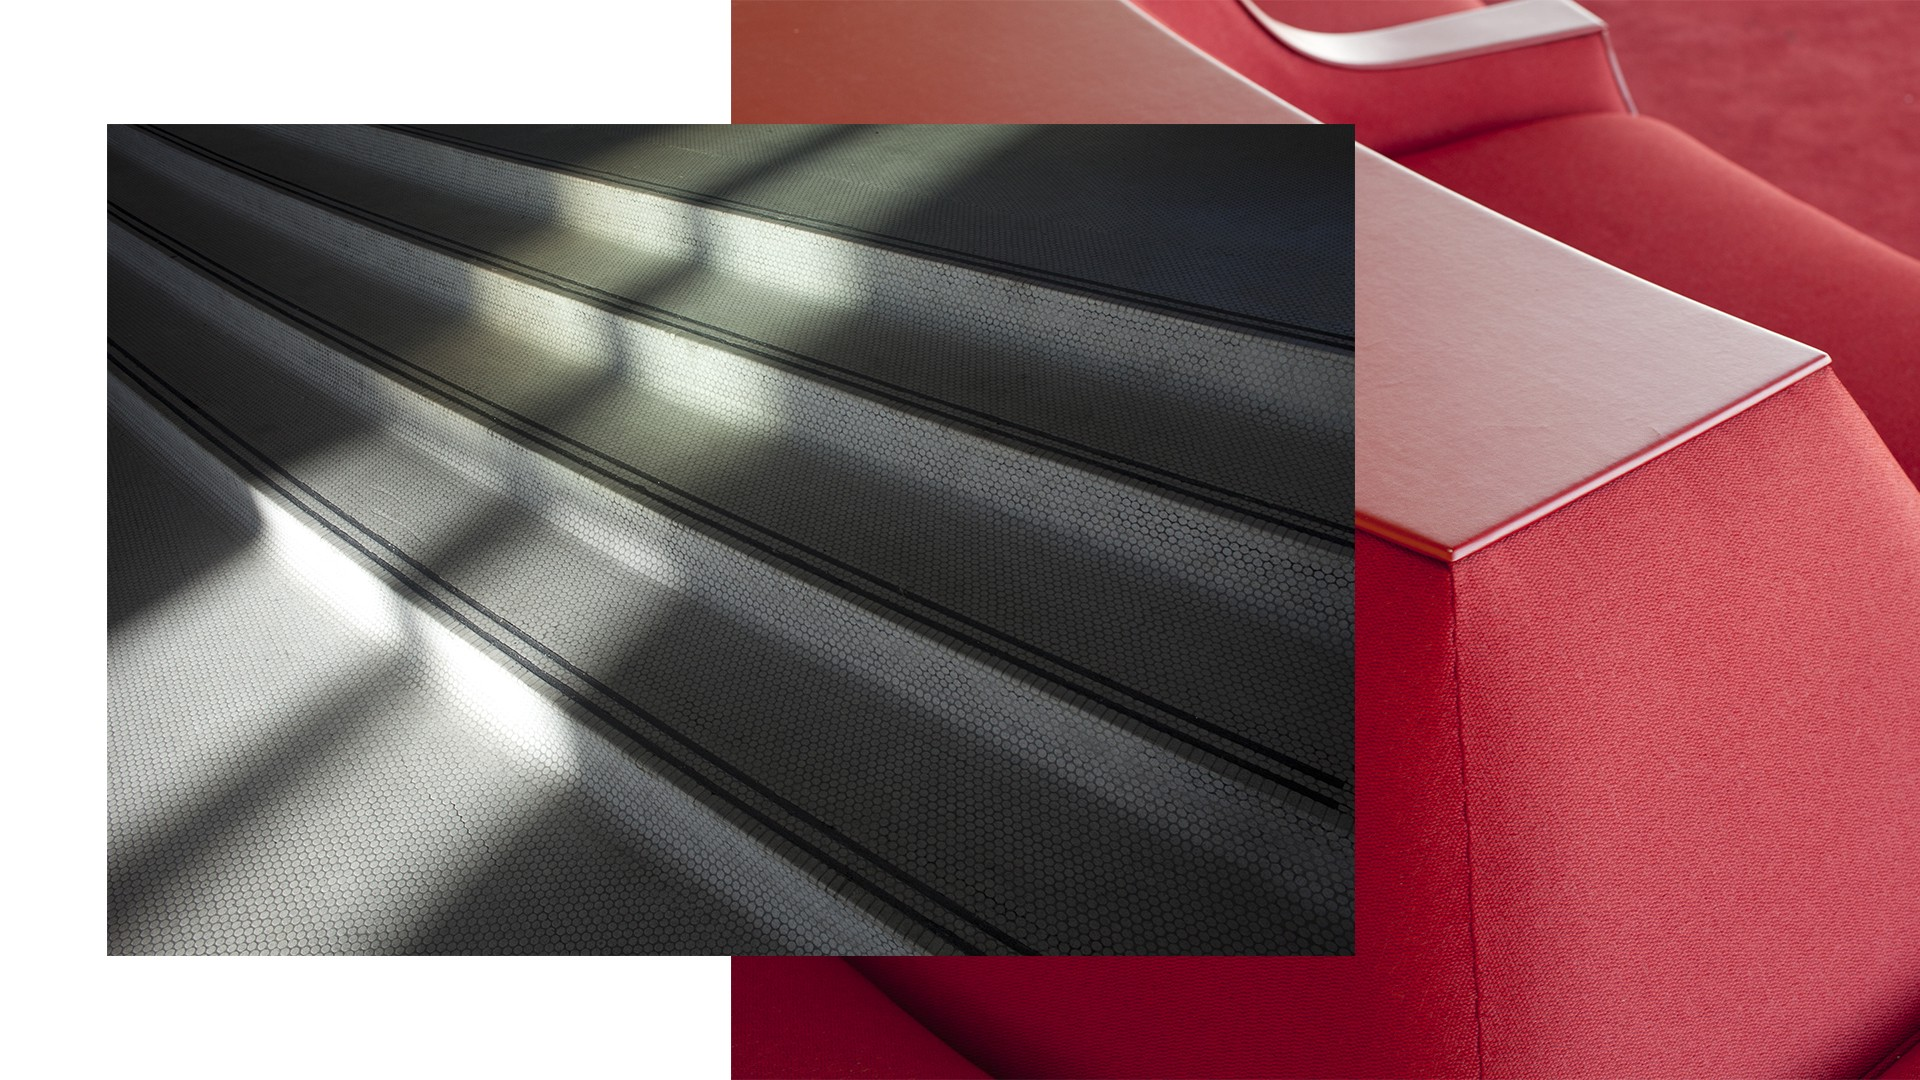 A photo collage of tiled stairs illuminated with light on top of a red bench inside the TWA Airport terminal.